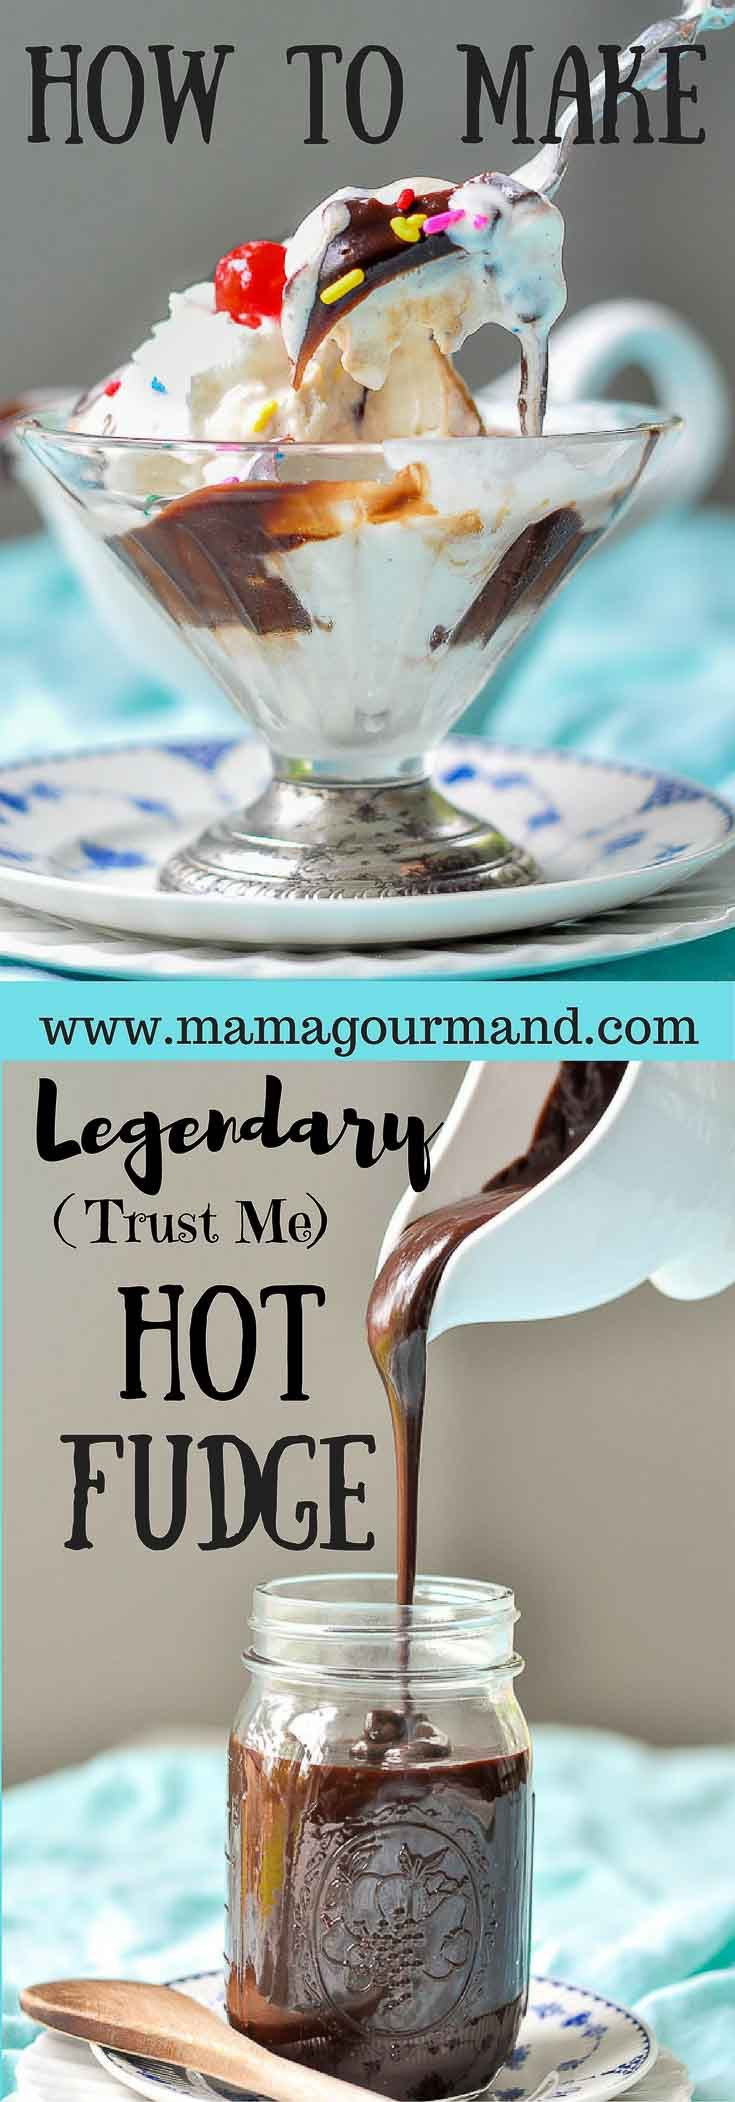 I've been making this legendary homemade hot fudge sauce for years. I've tried others, but this simple, chewy, gooey hot fudge recipe can't be beat! http://www.mamagourmand.com via @mamagourmand